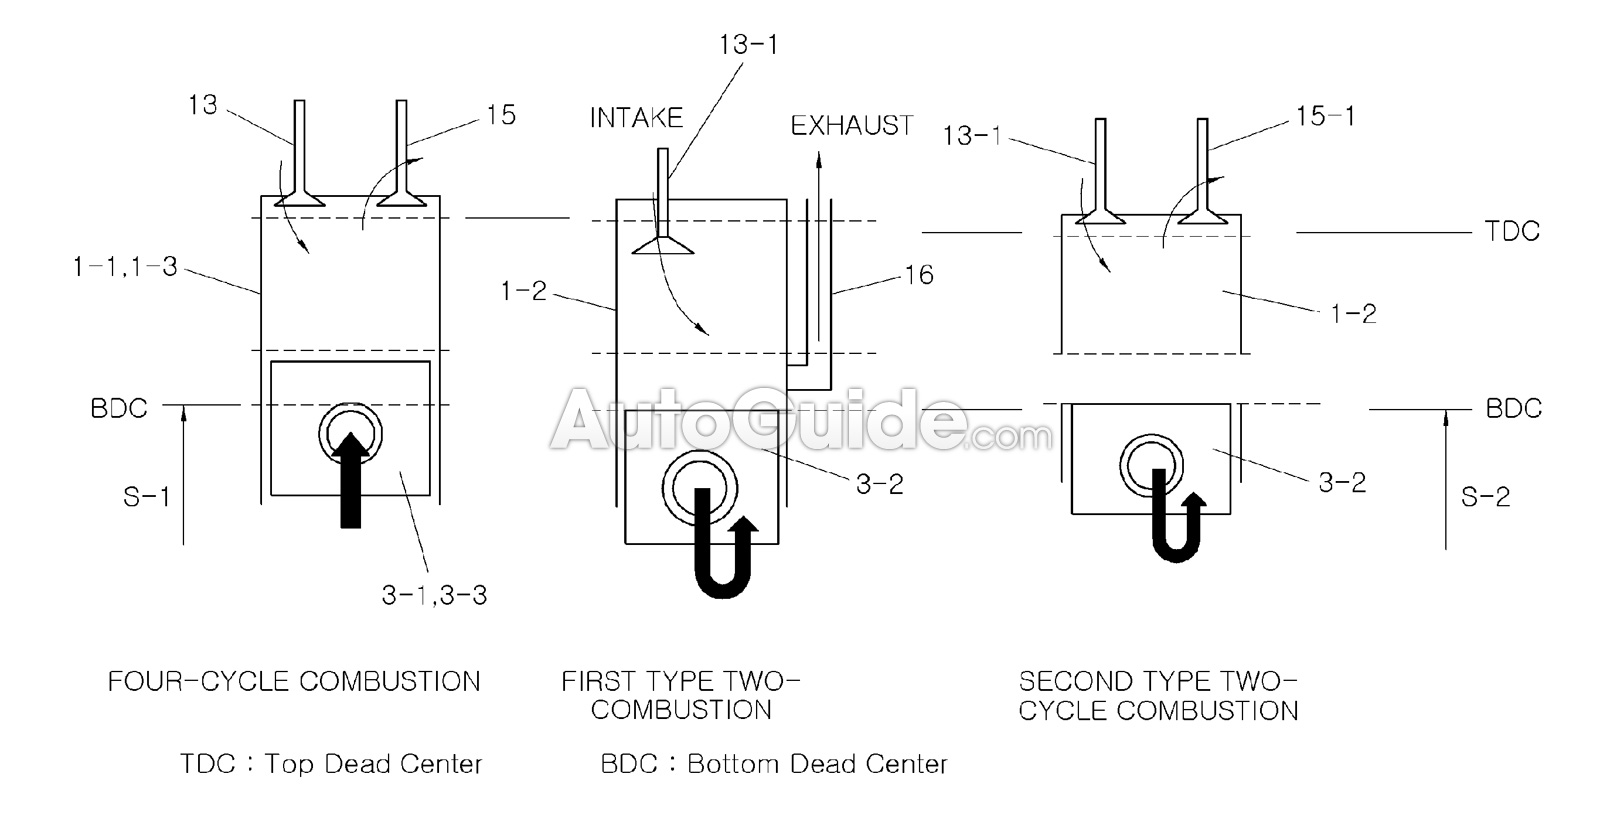 Hyundai Patents An Engine With Different Size Cylinders Autoguide Diagram Four Cylinder Patent 09